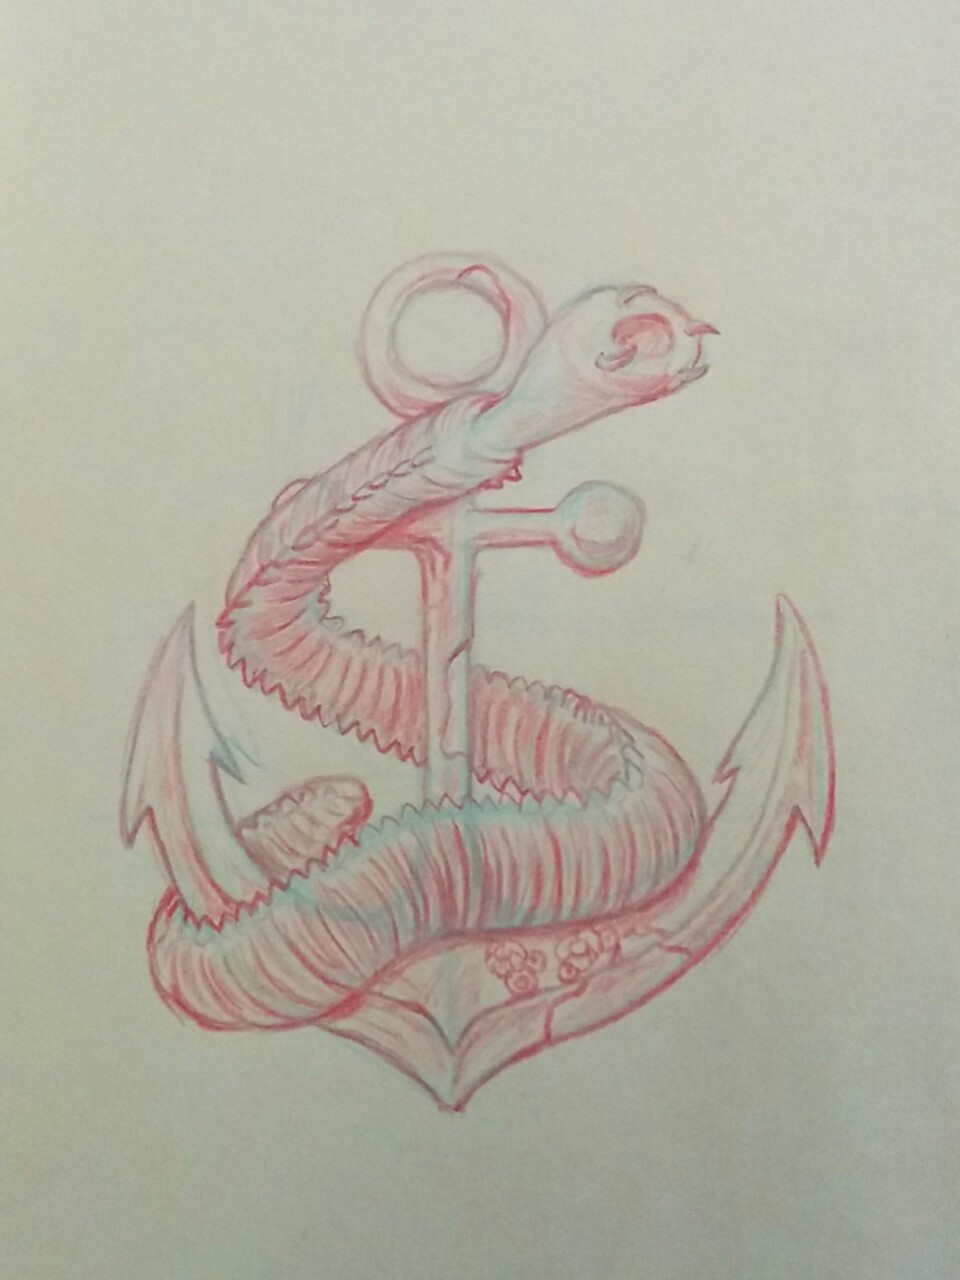 """Sketch for a T-Shirt/Postcard design for sale in and around my home town. """"Wiscasset, Maine: Bloodworm Capital of the World!"""""""